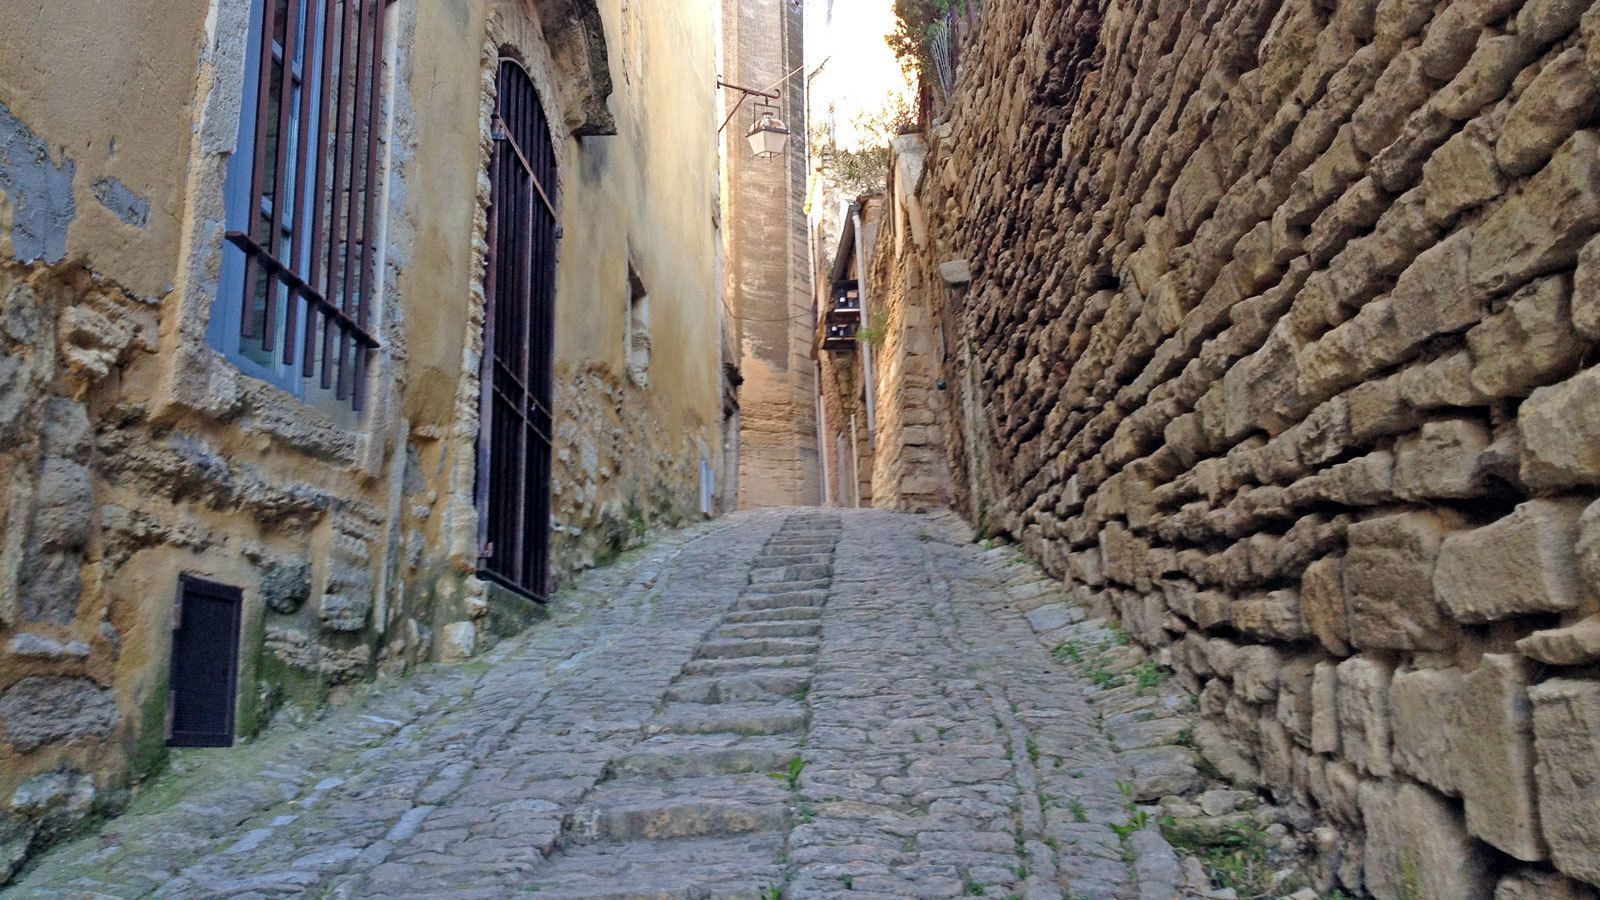 walking through the old stone roads in France